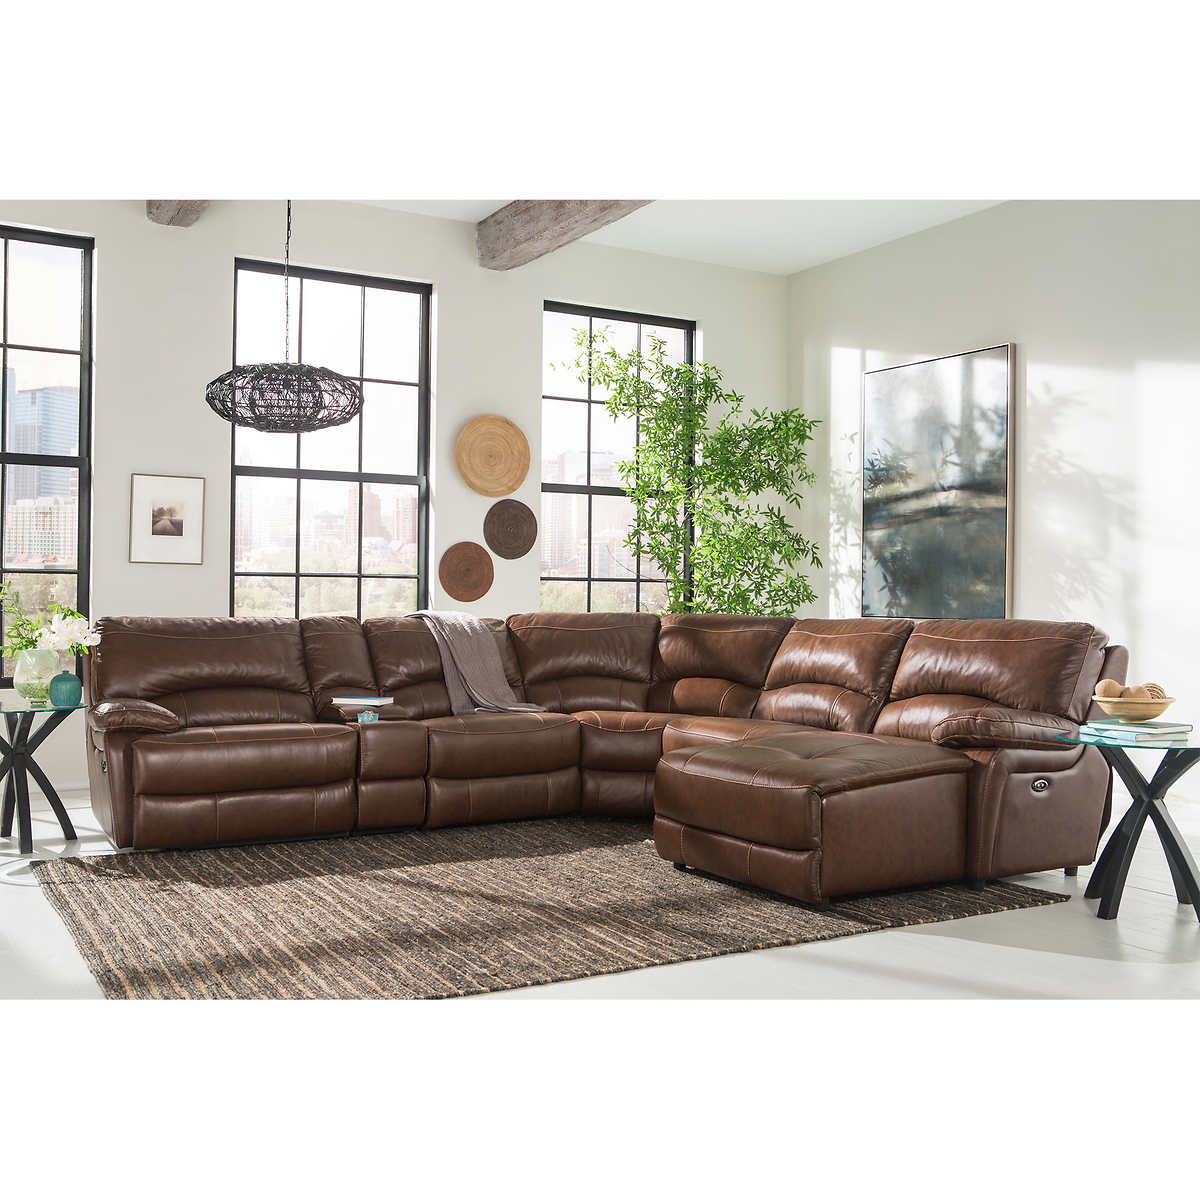 Maddie 6-piece Top Grain Leather Power-Reclining Modular Sectional - Leather Sofas & Sectionals Costco